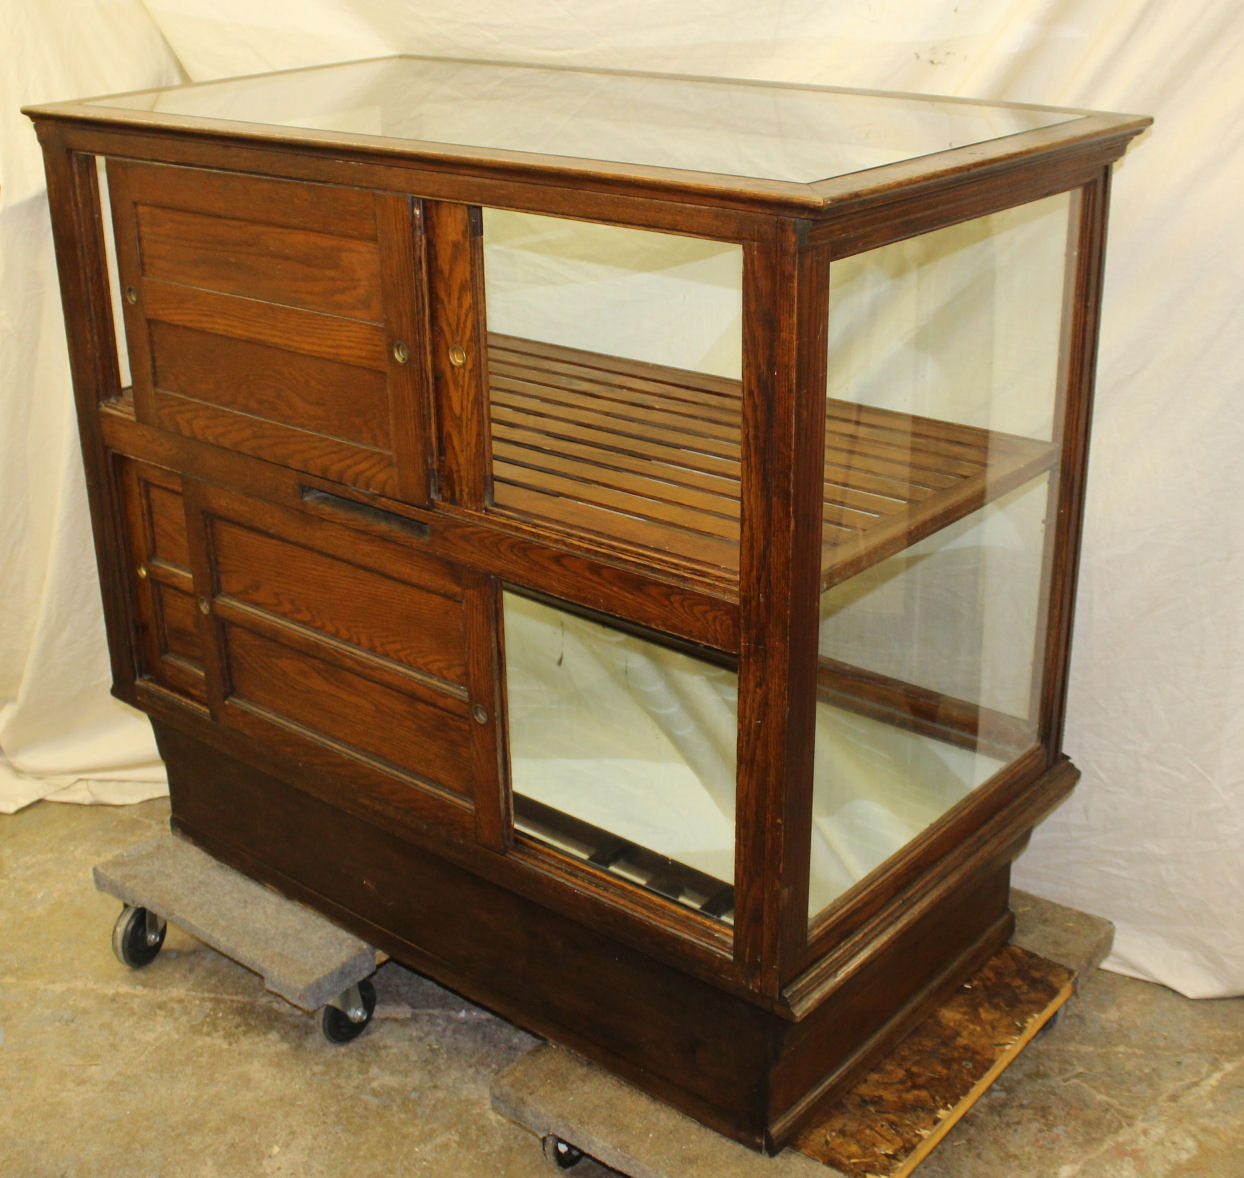 There is a brass label of the maker of the cabinet on the inside that reads  Yesbera Toledo Ohio. Measures 48″ wide, 26 1/2″ Depth and 42 1/2″ Height. - Bargain John's Antiques » Blog Archive Antique Oak Cigar Tobacco